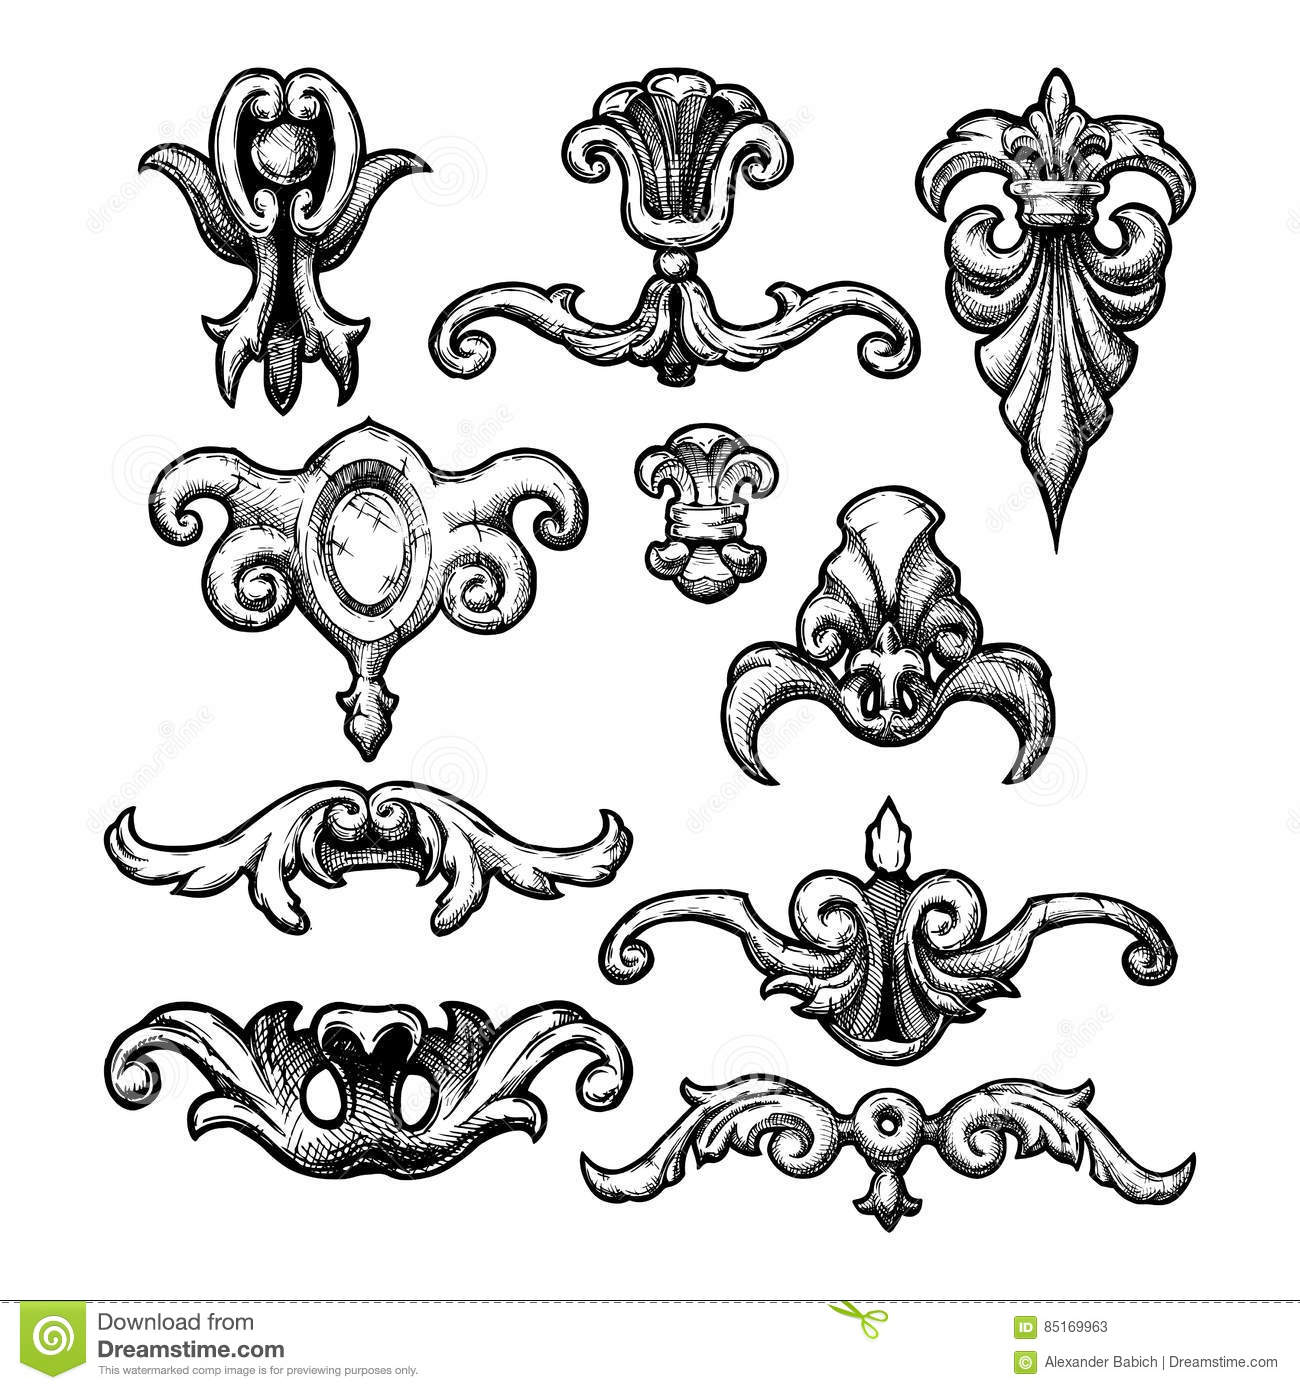 Baroque and renaissance decorative design elements stock for Baroque architecture elements